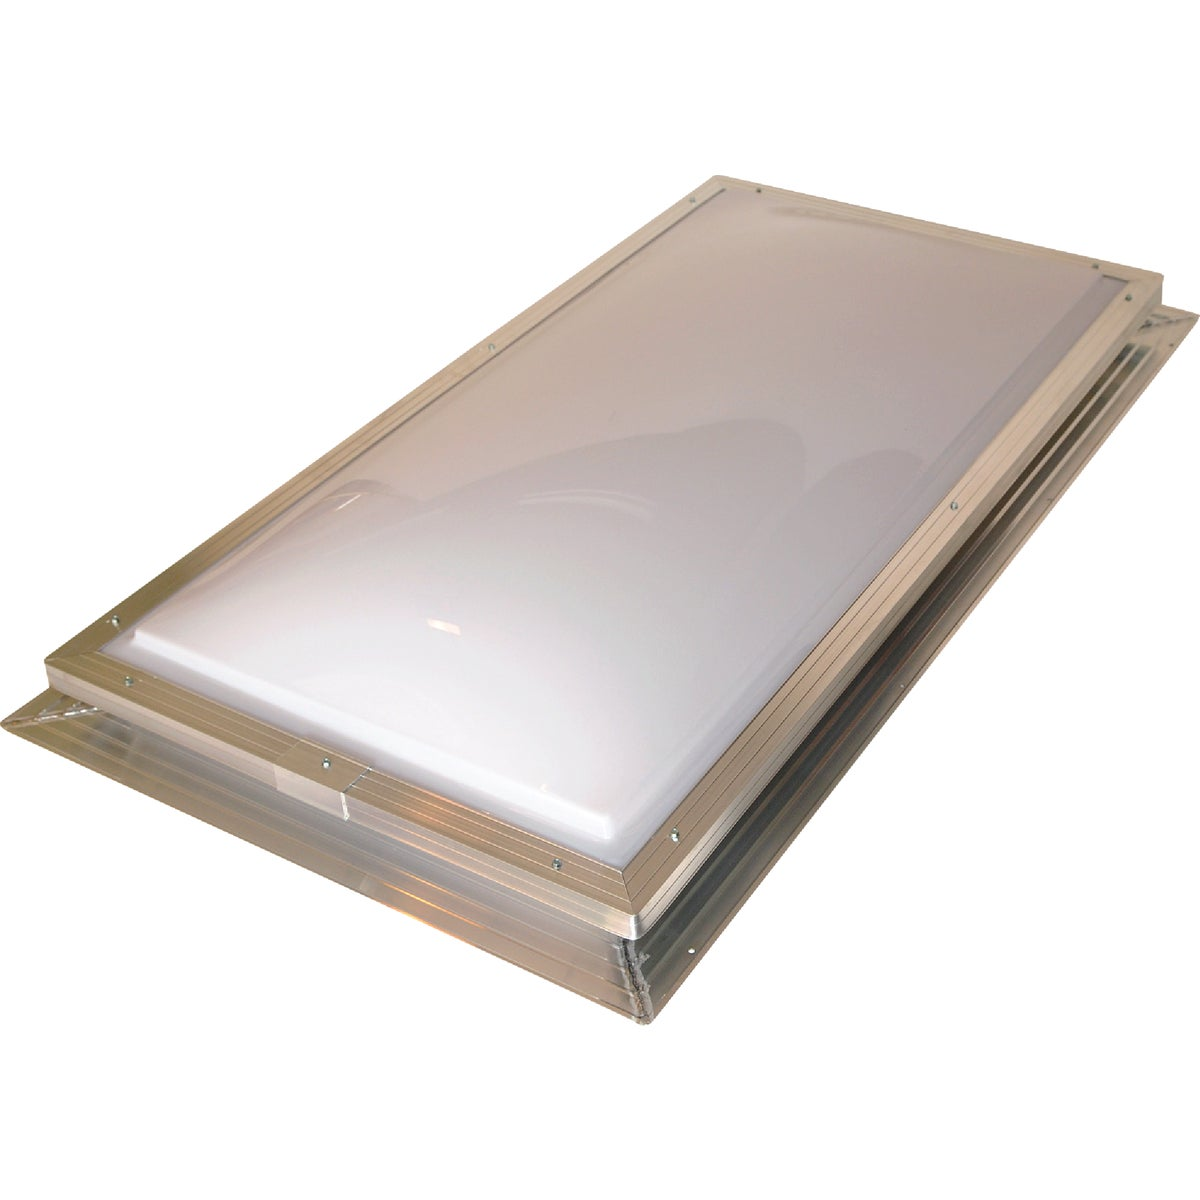 2X4 WH/CL 2DOME SKYLIGHT - SFA2246WCN by Sun Tek Manuf Inc